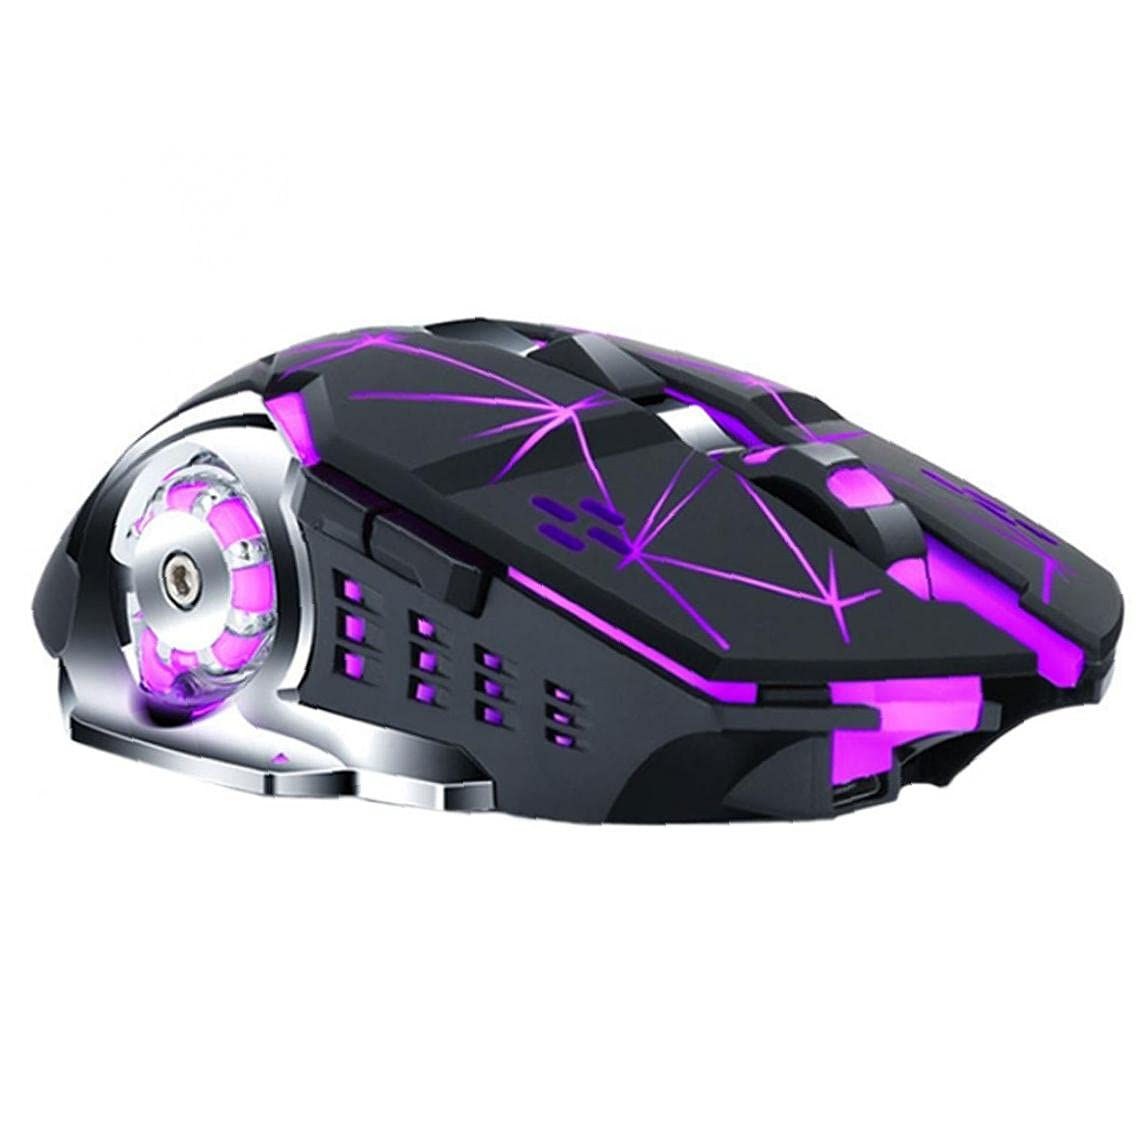 Wireless Gifts Gaming Mouse Q13 Ranking TOP5 Rechargeable Silent USB LED Op Backlit